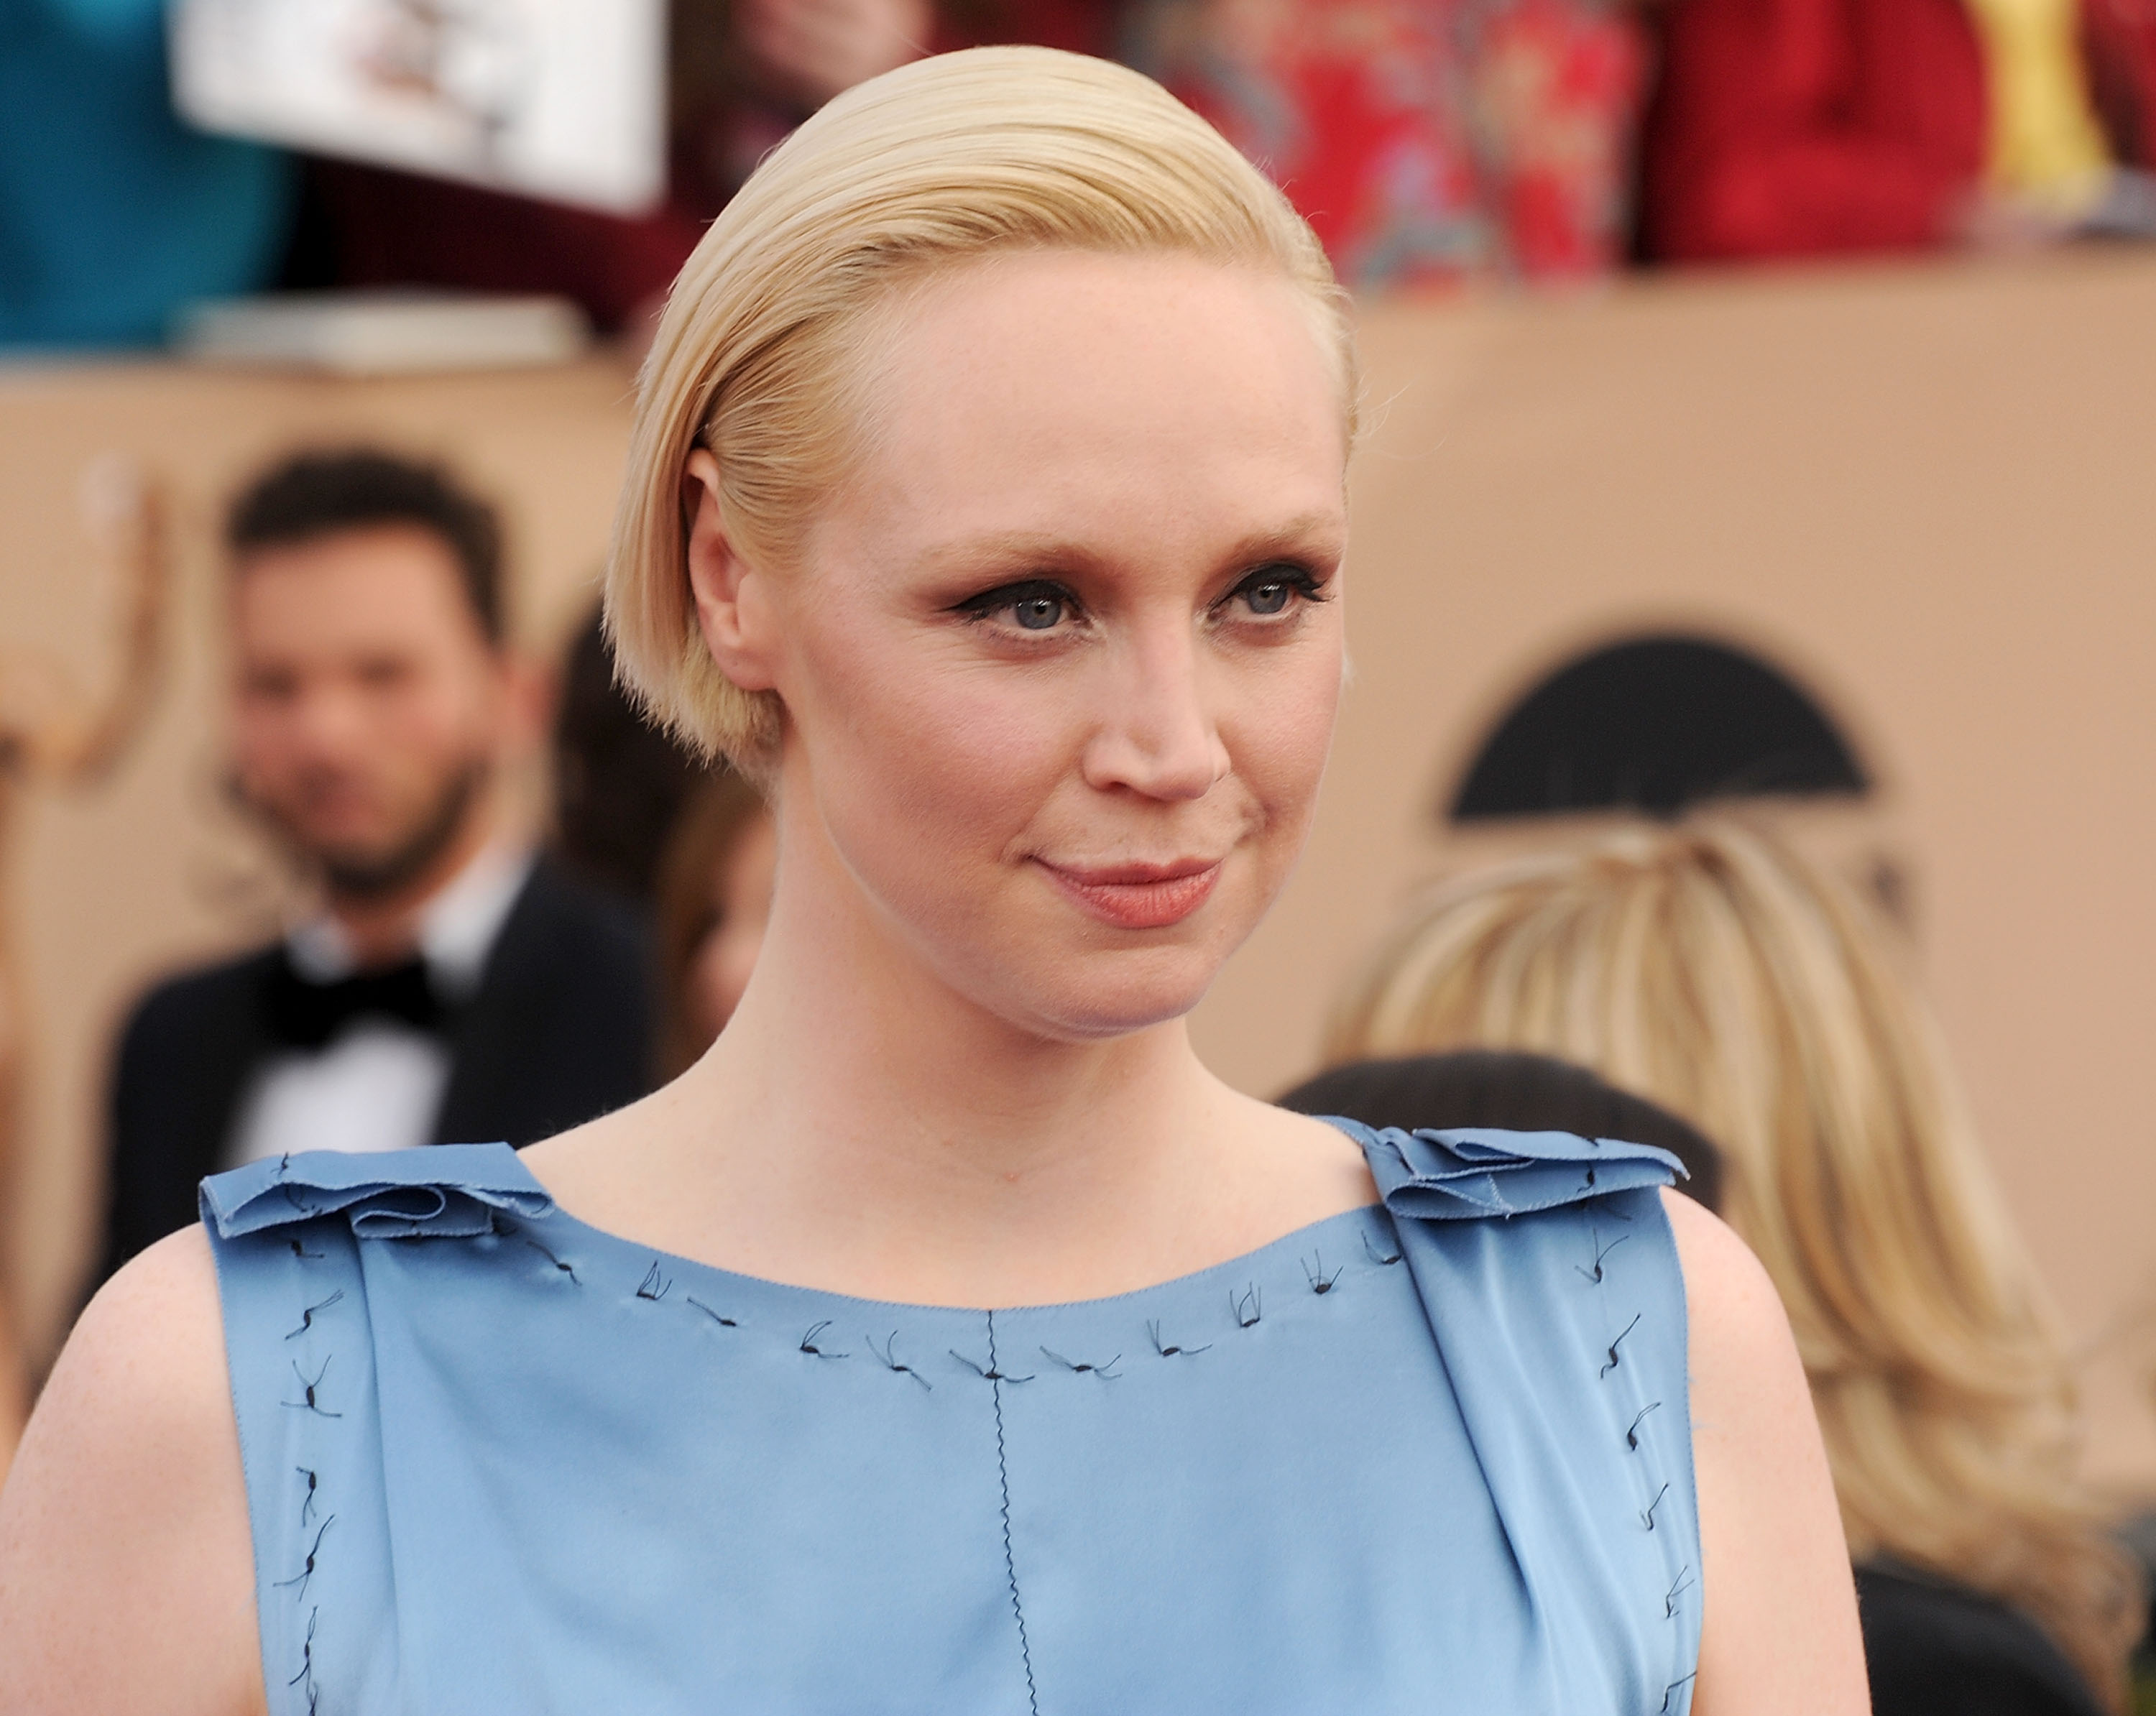 Actress Gwendoline Christie arrives at the 22nd Annual Screen Actors Guild Awards at The Shrine Auditorium on January 30, 2016 in Los Angeles, California.